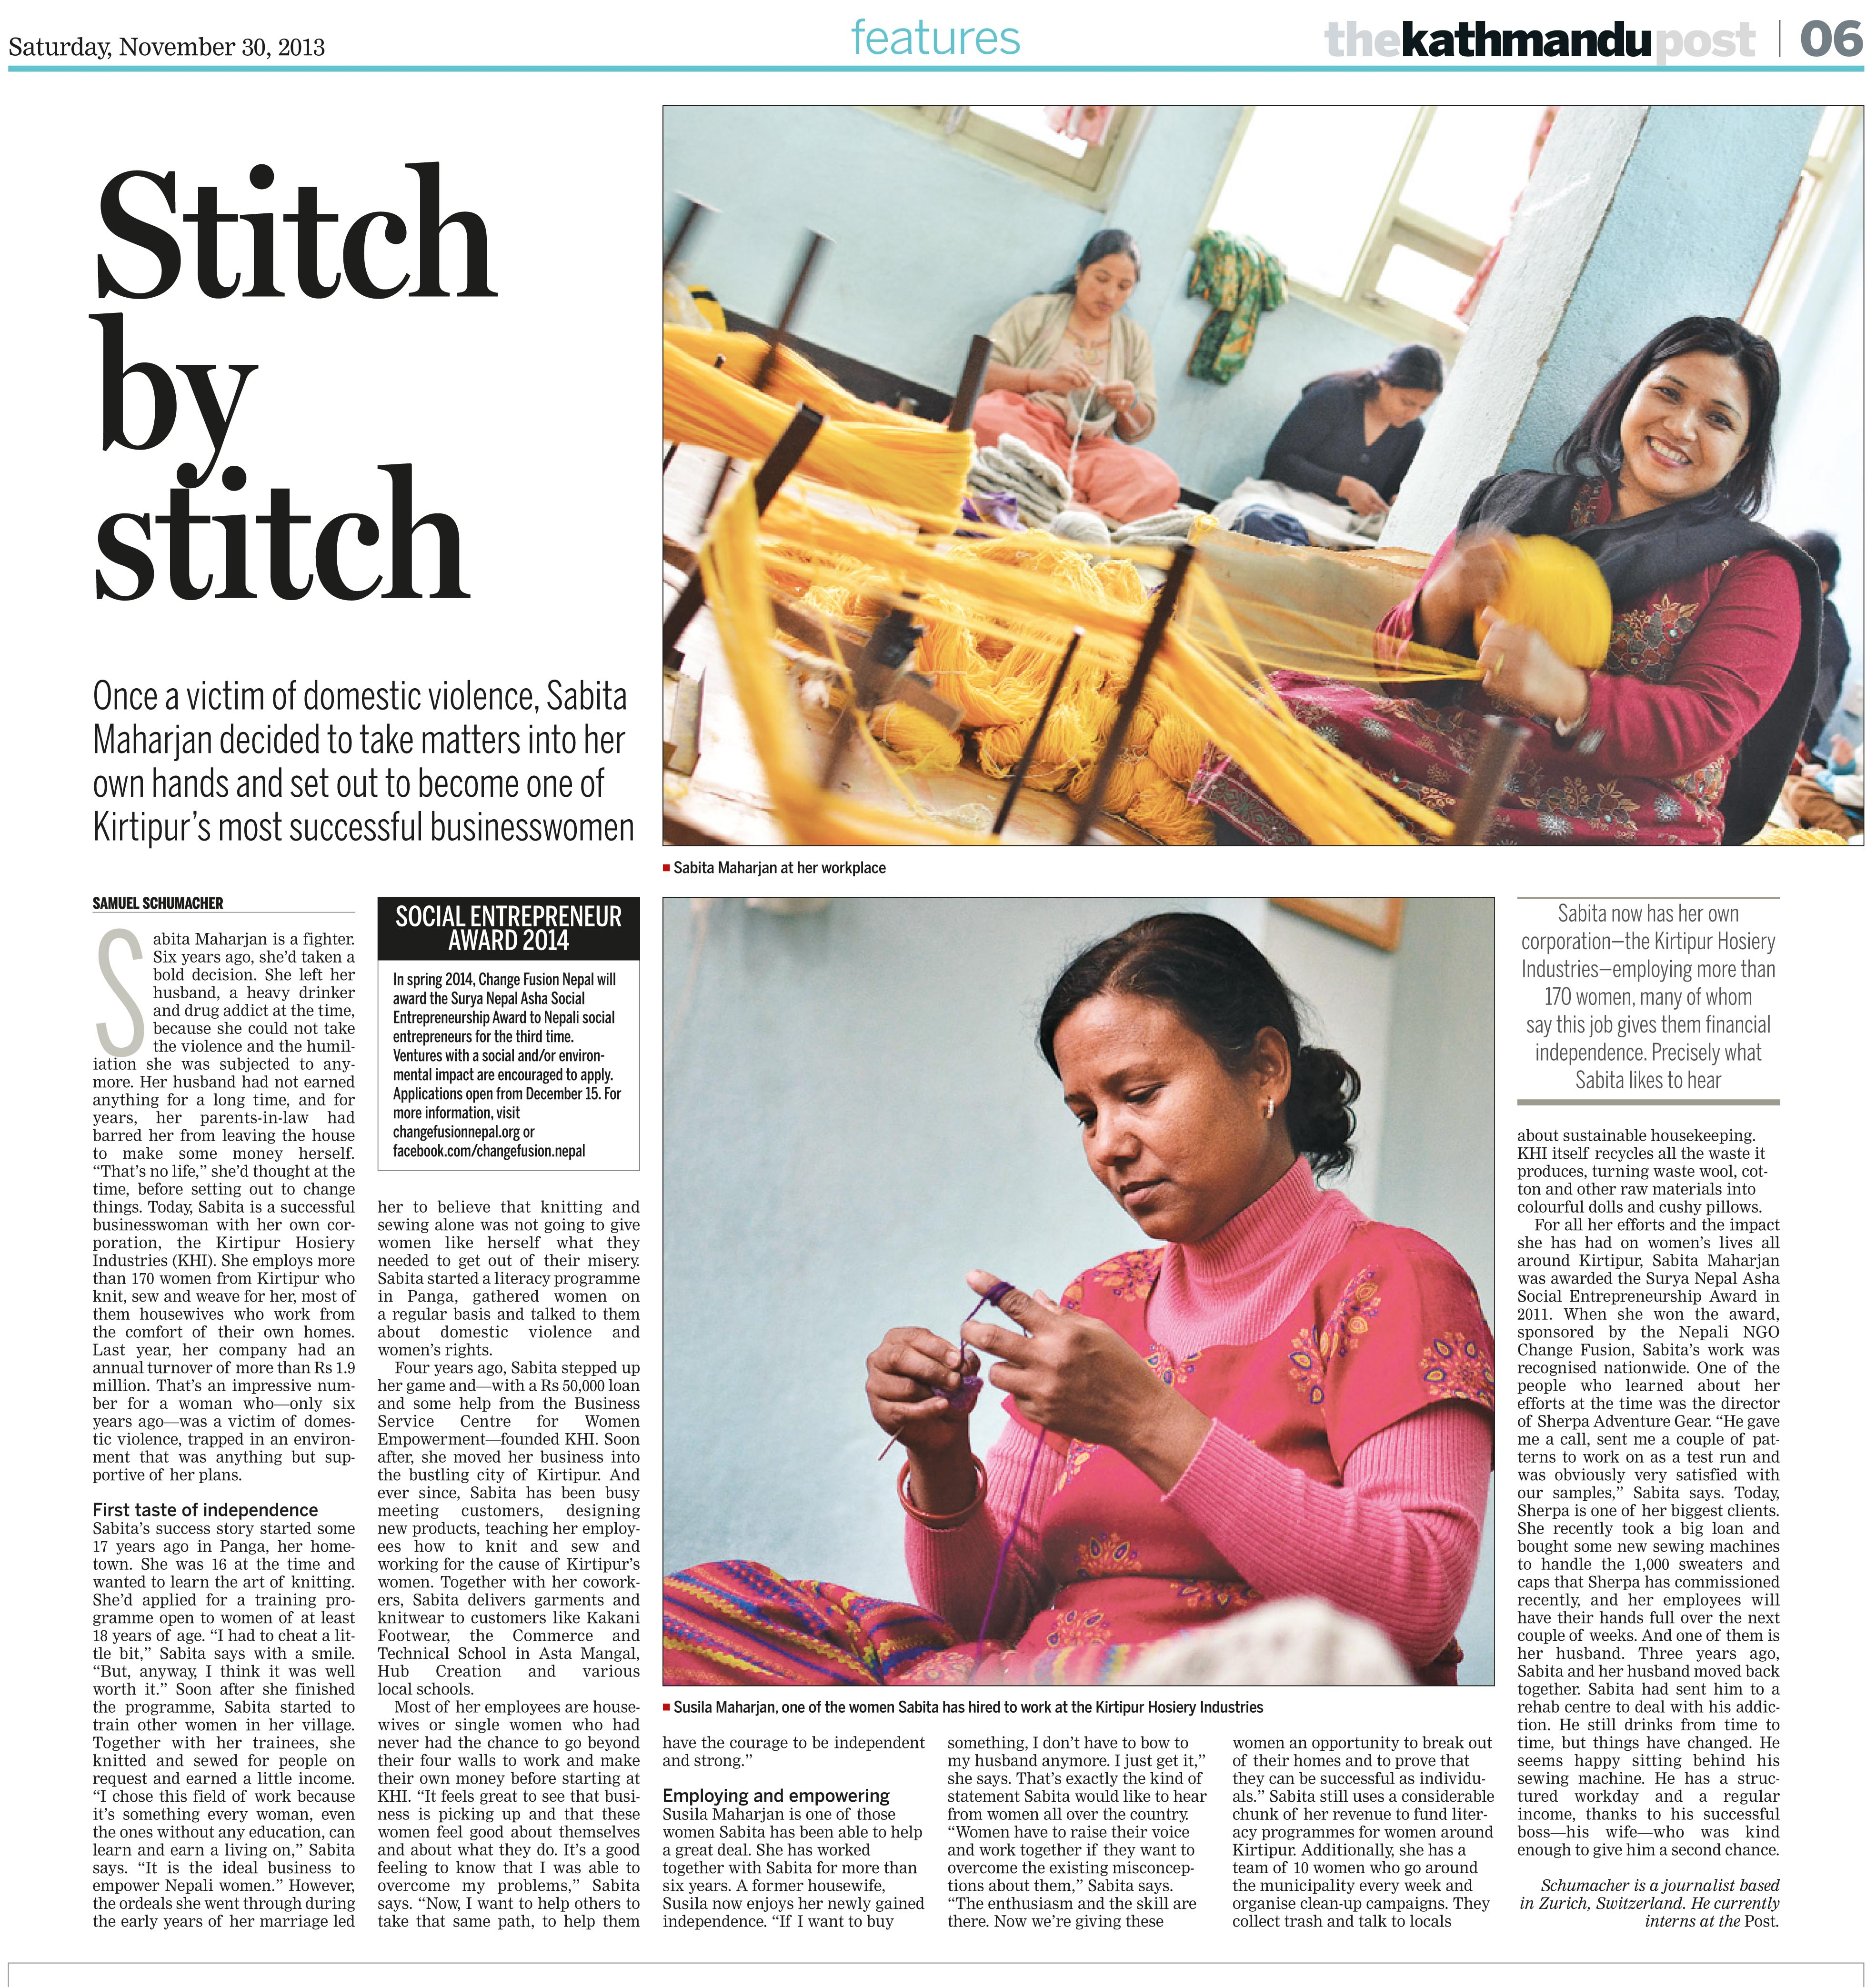 """Stitch by Stitch"", Kathmandu Post, 30. November 2013."